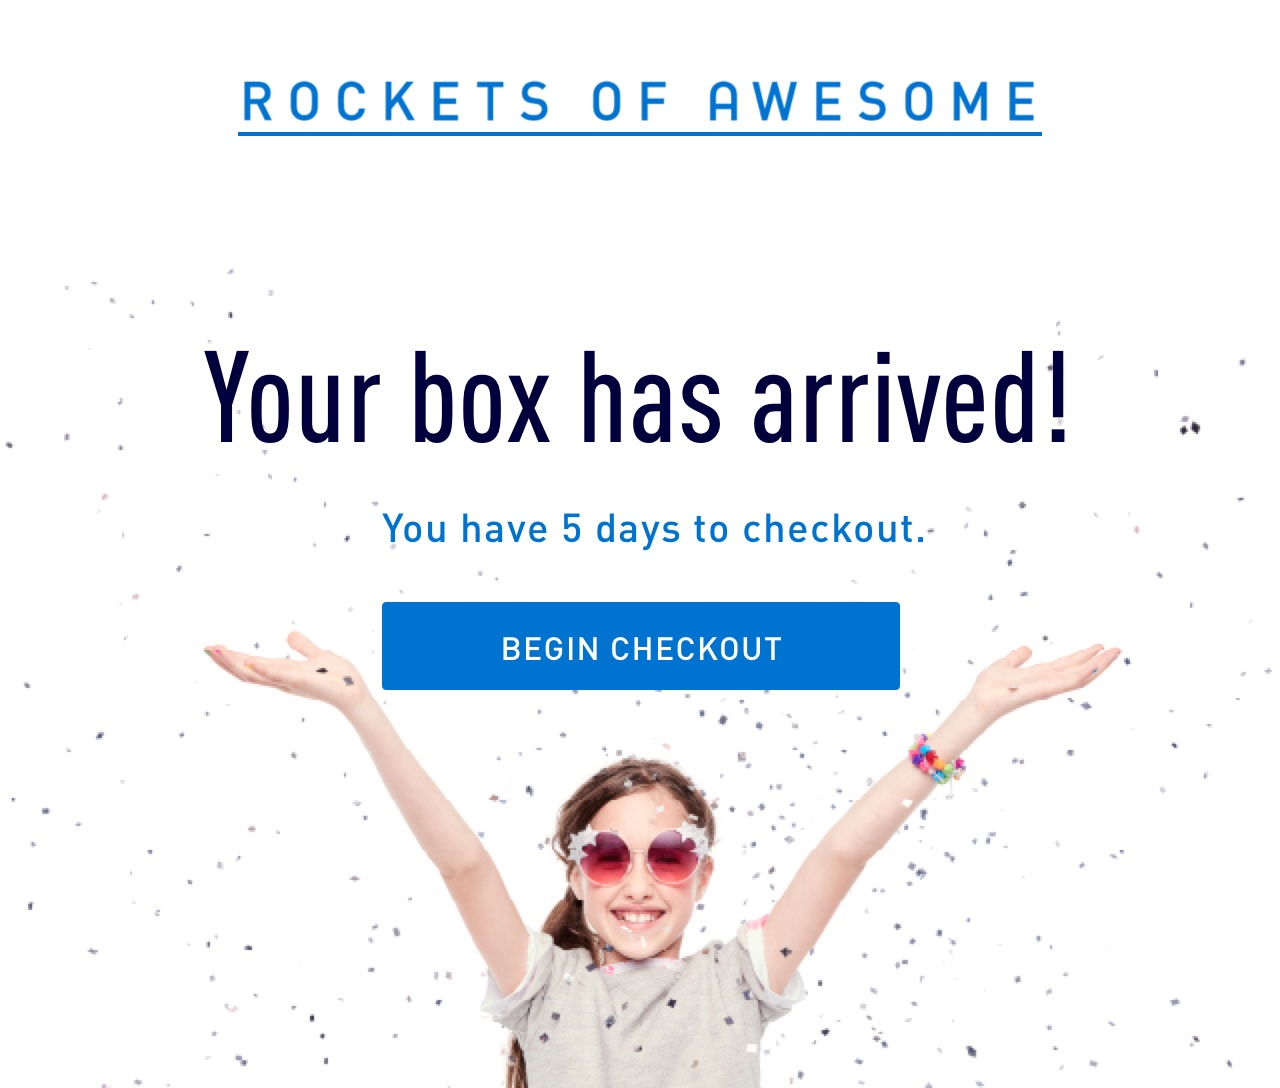 Hooray! Your box has arrived. You have 5 days to checkout. Keep what you love. send back what you don't.